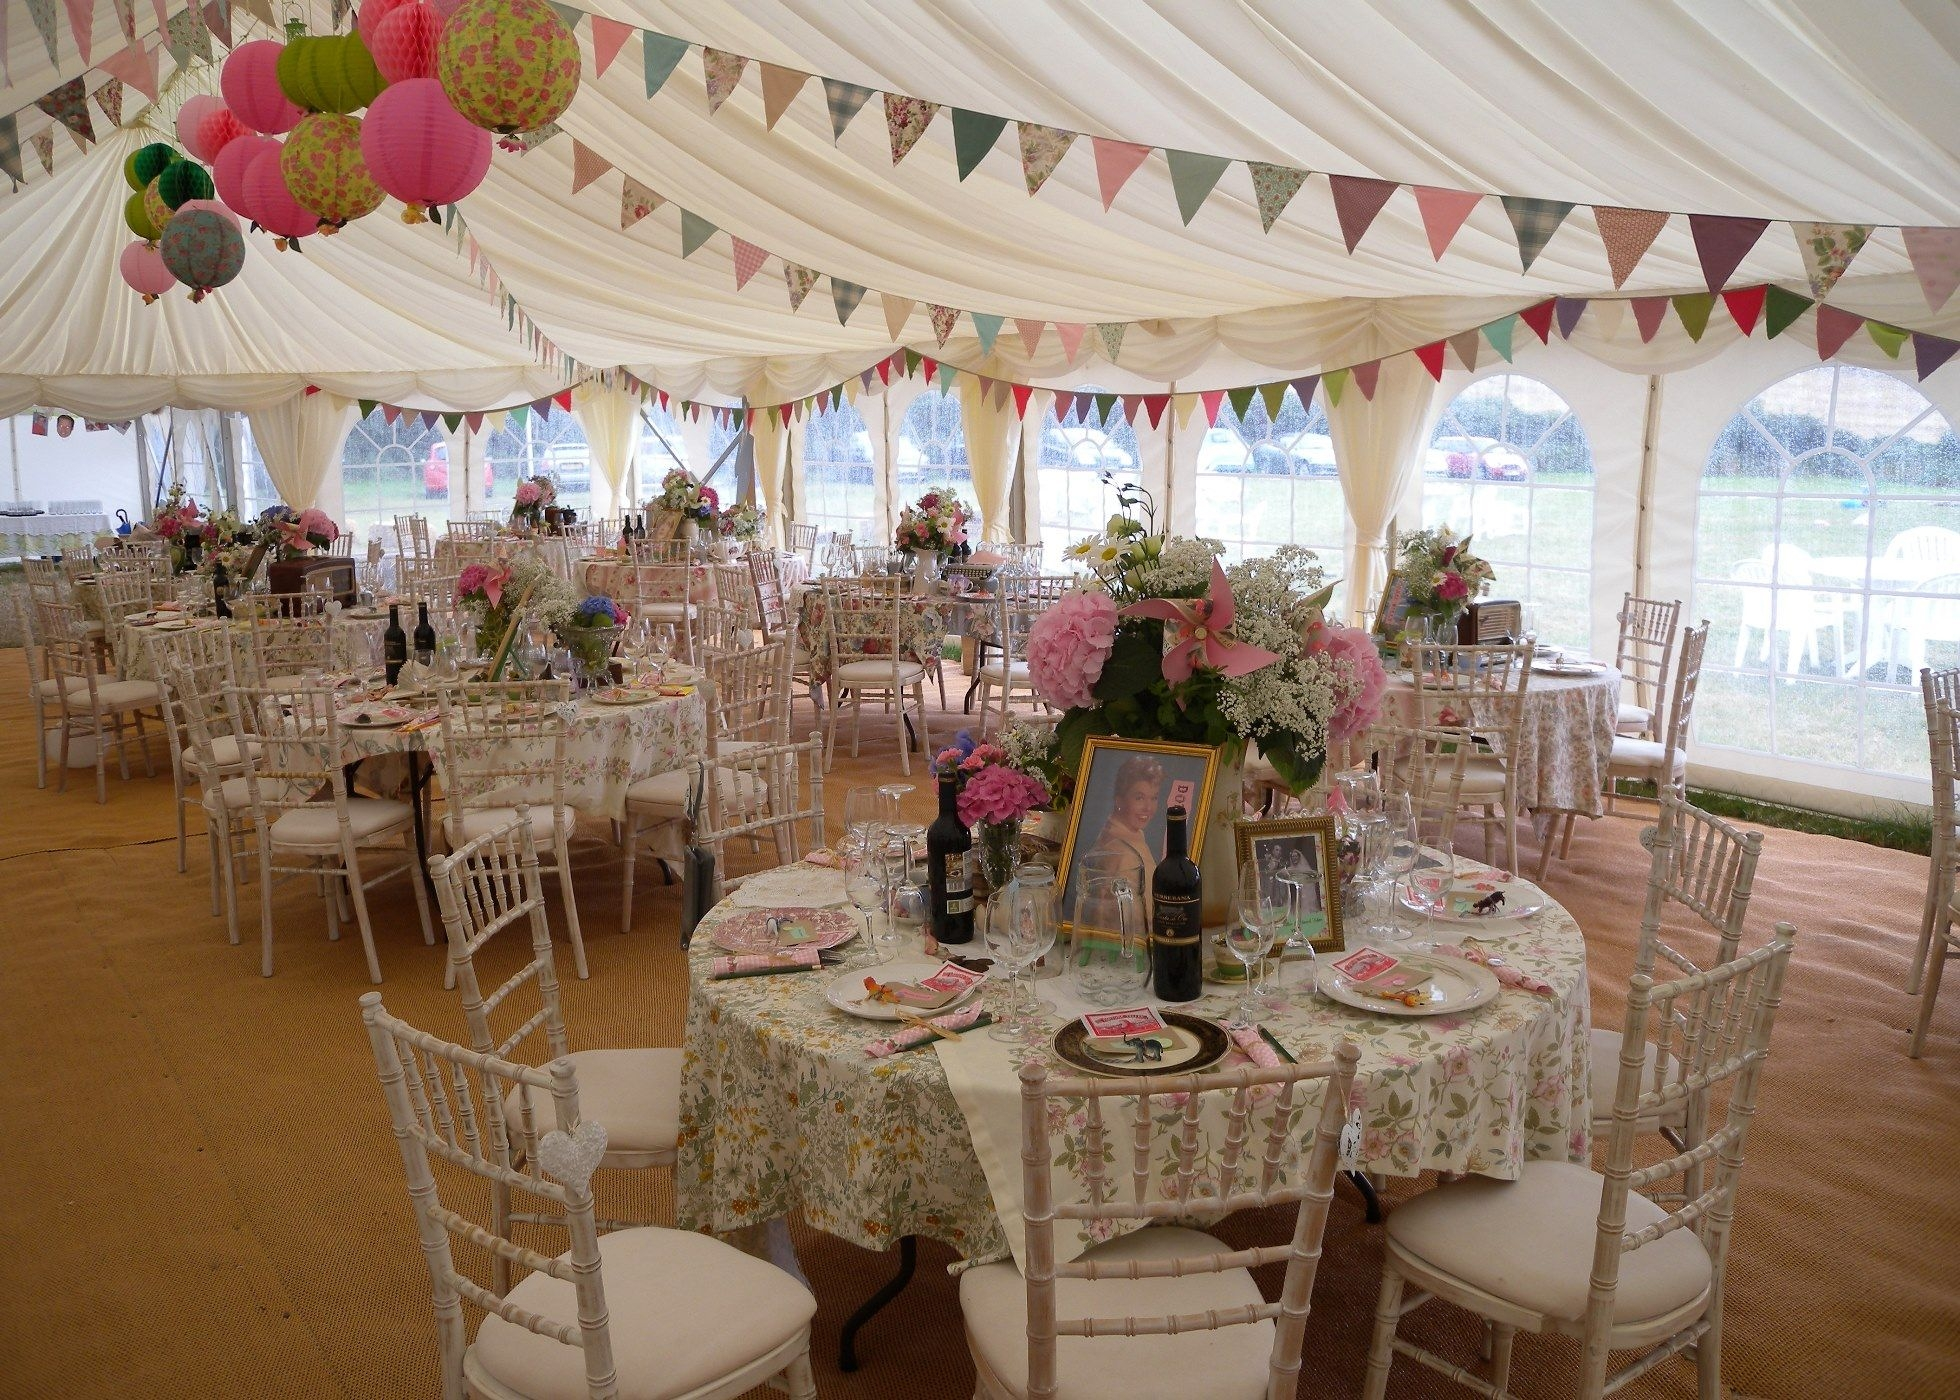 Wedding Marquee interior with vintage, 1950s style table settings, bunting and paper lanterns